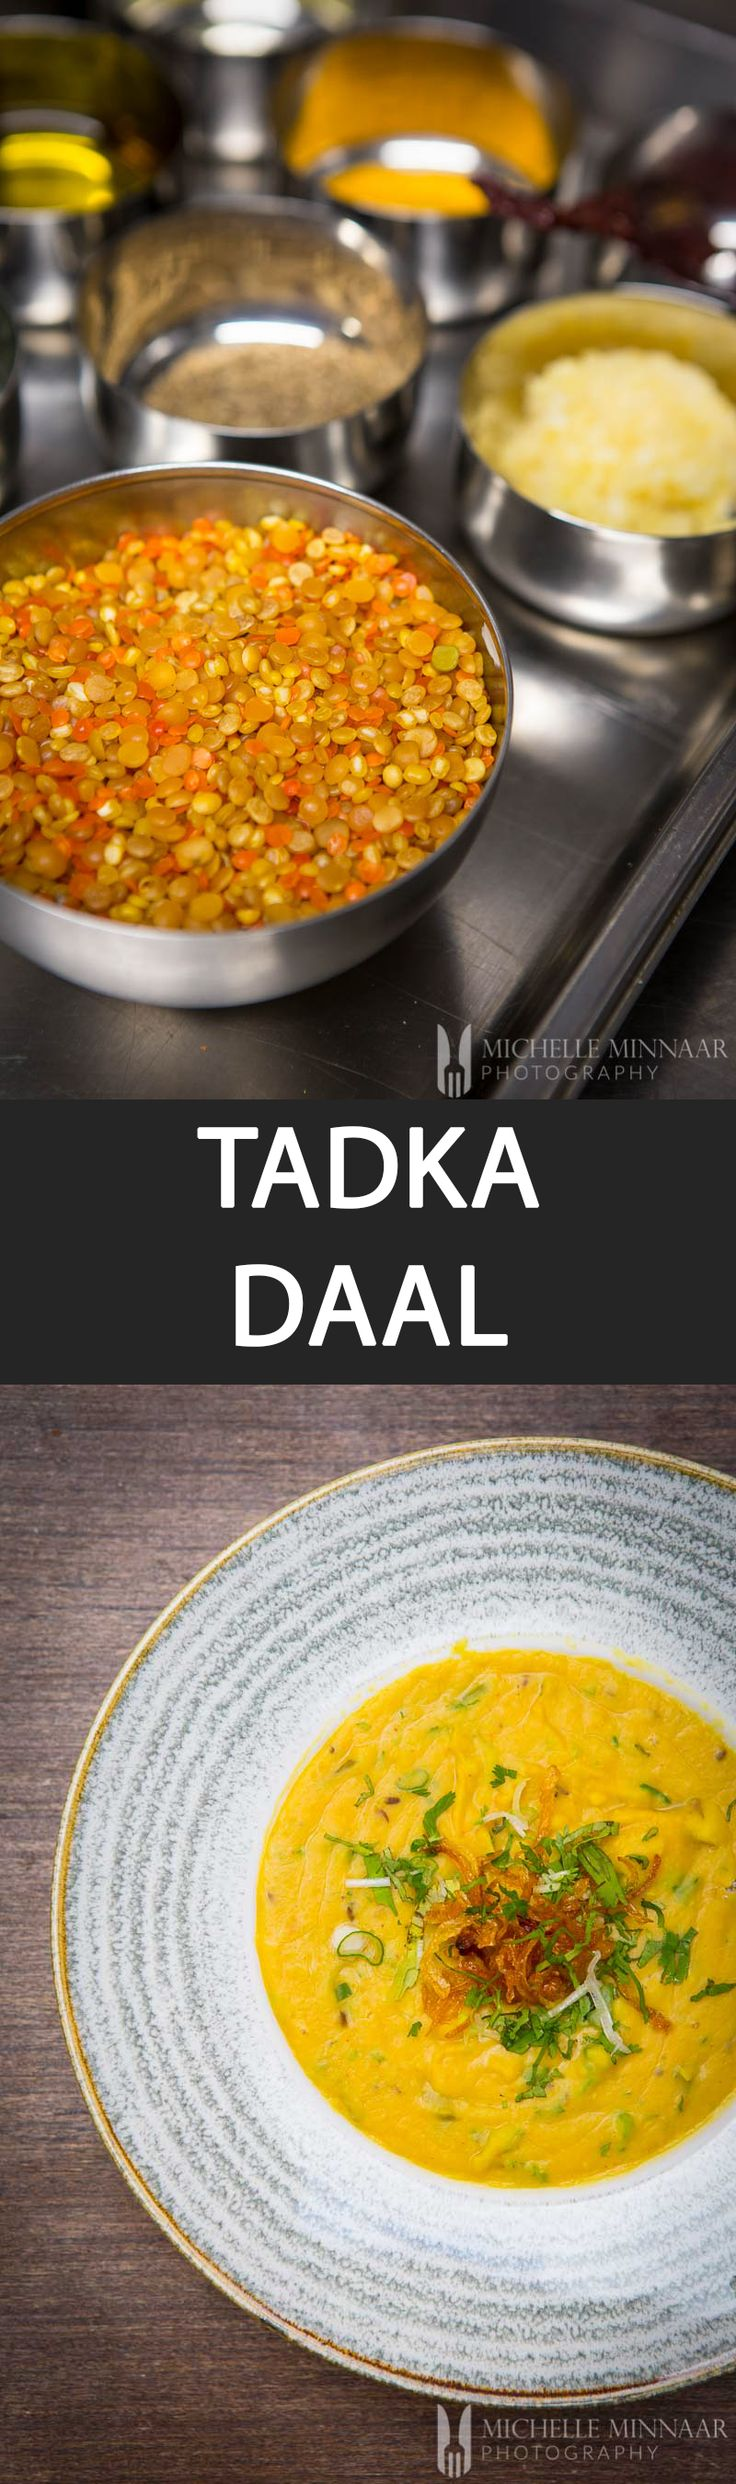 Tadka Daal - {NEW RECIPE} This Tadka Daal recipe is made with yellow and pink lentils. The dish can be served as a main course or side with rice or bread. It's very economical too!